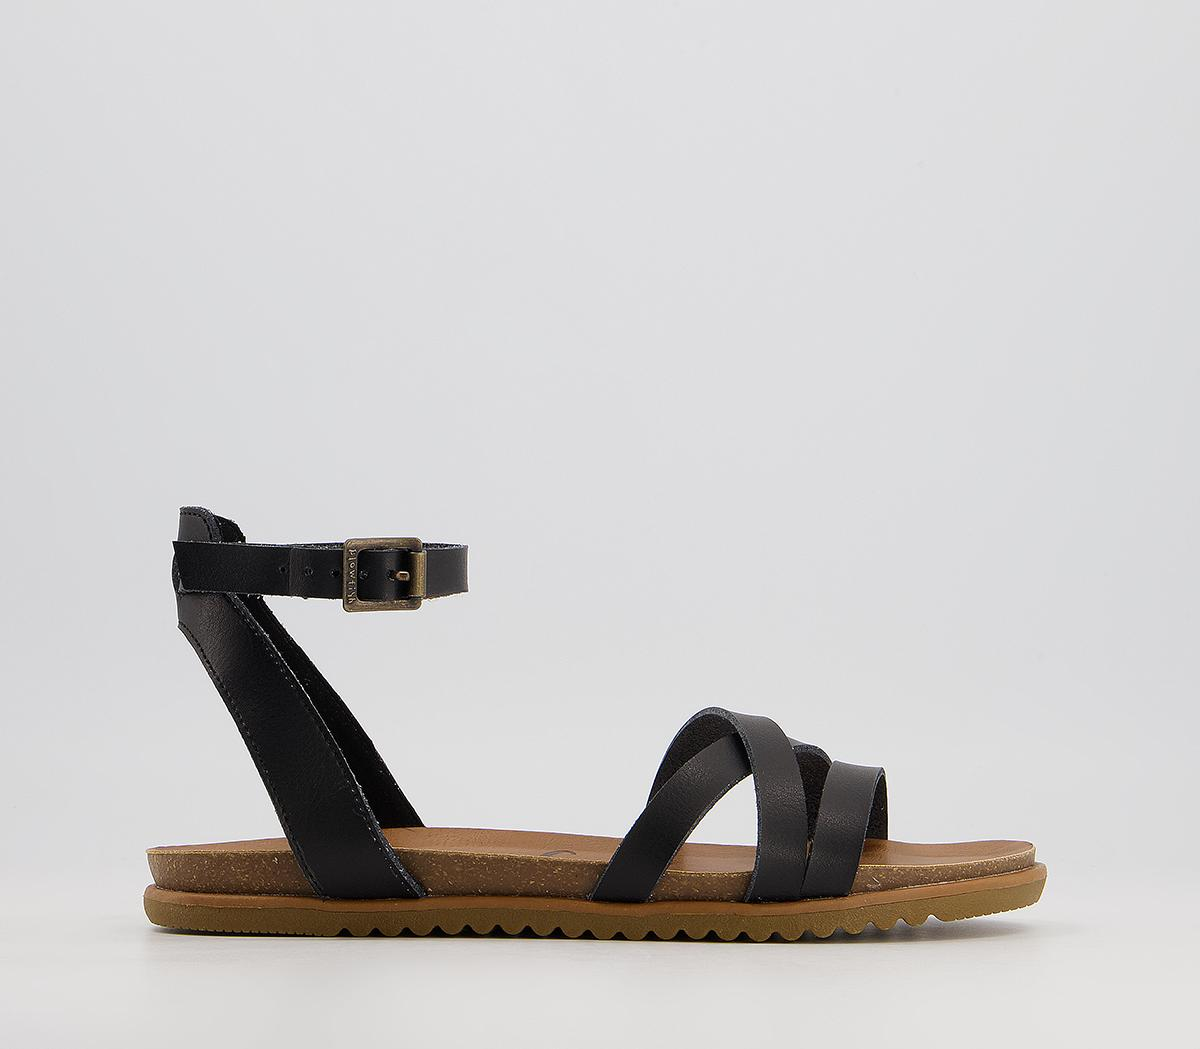 Maylie Sandals